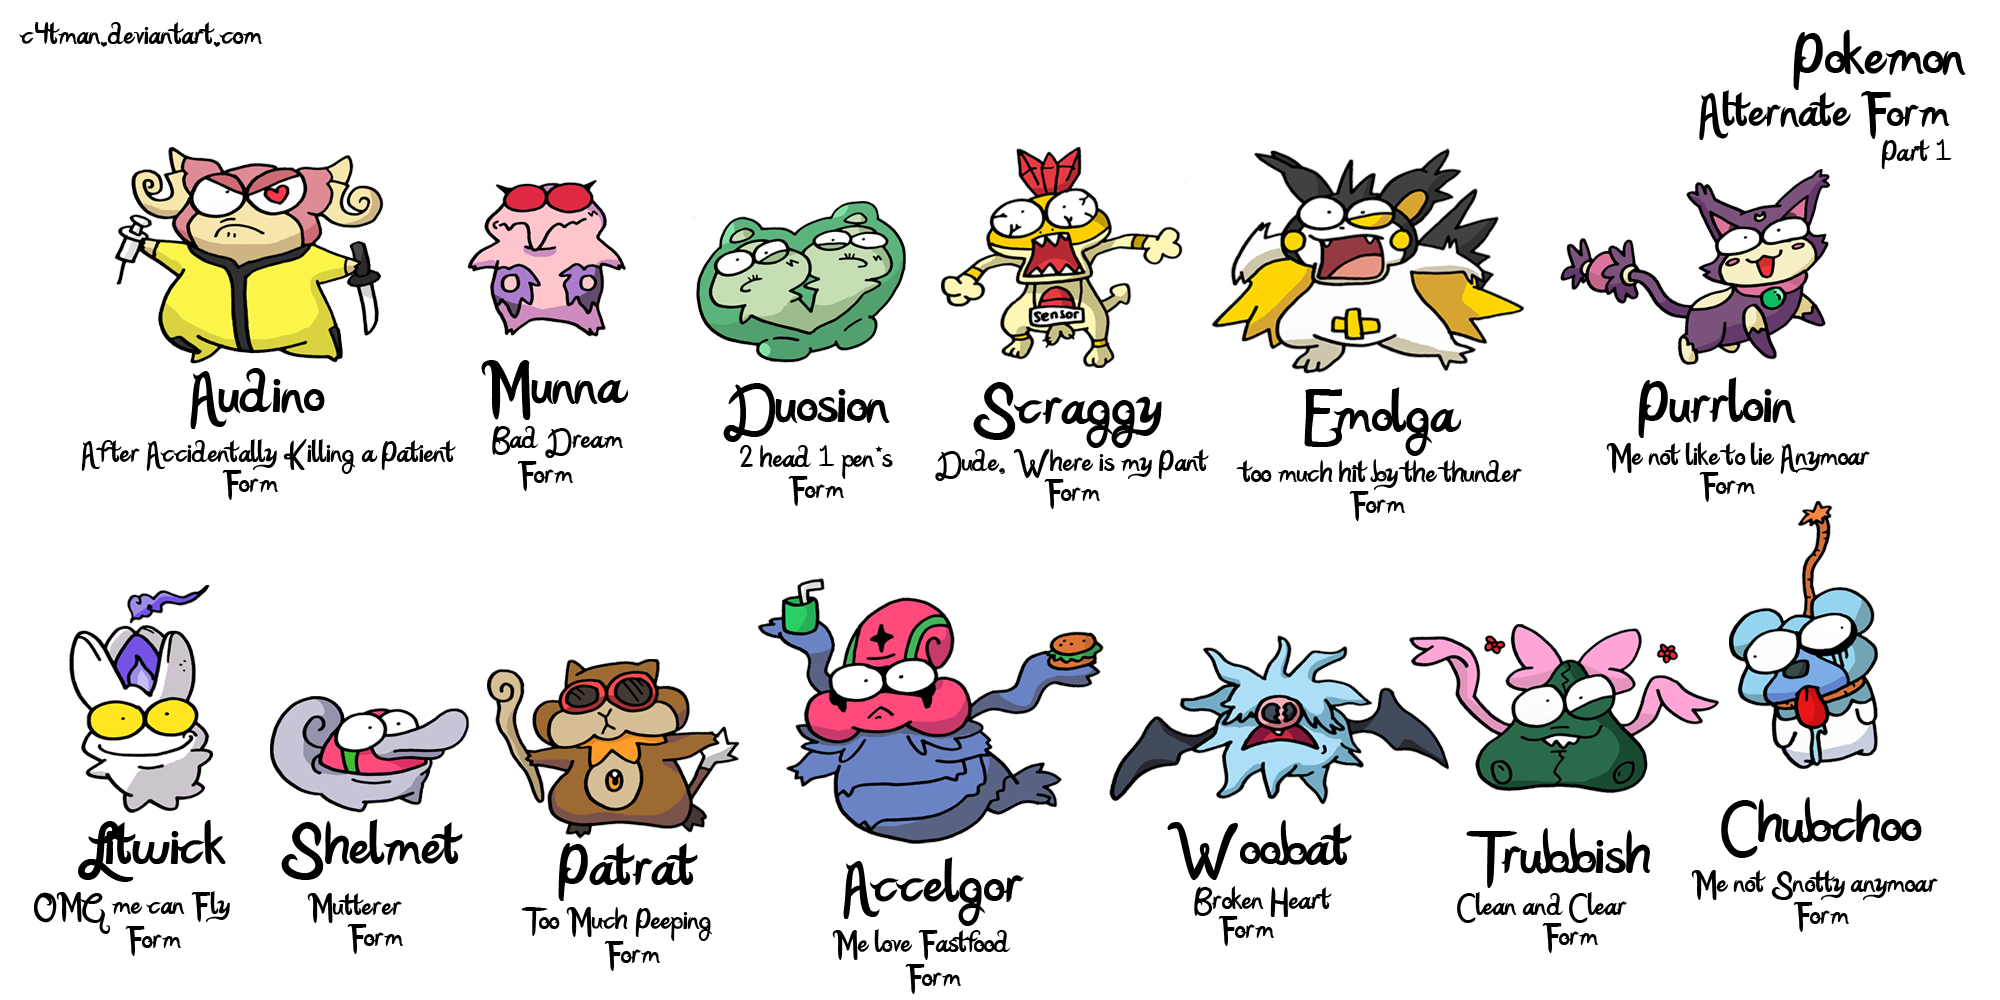 POKEMON alternate form PART 1 by c4tman on DeviantArt